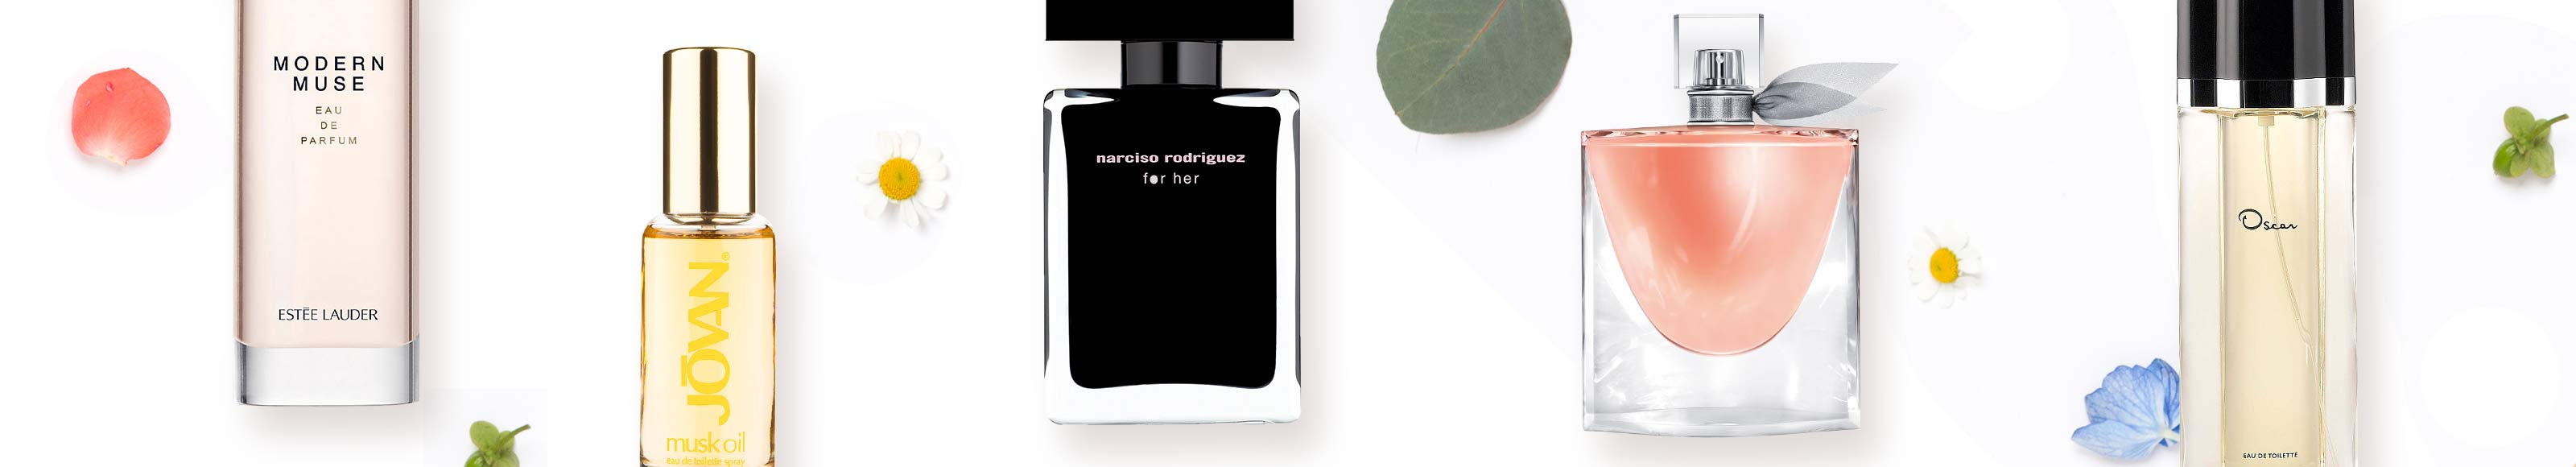 Fragrance Walgreens Parfum Zara For Him Silver Collection Man Fragrances Get The Scents Of Season